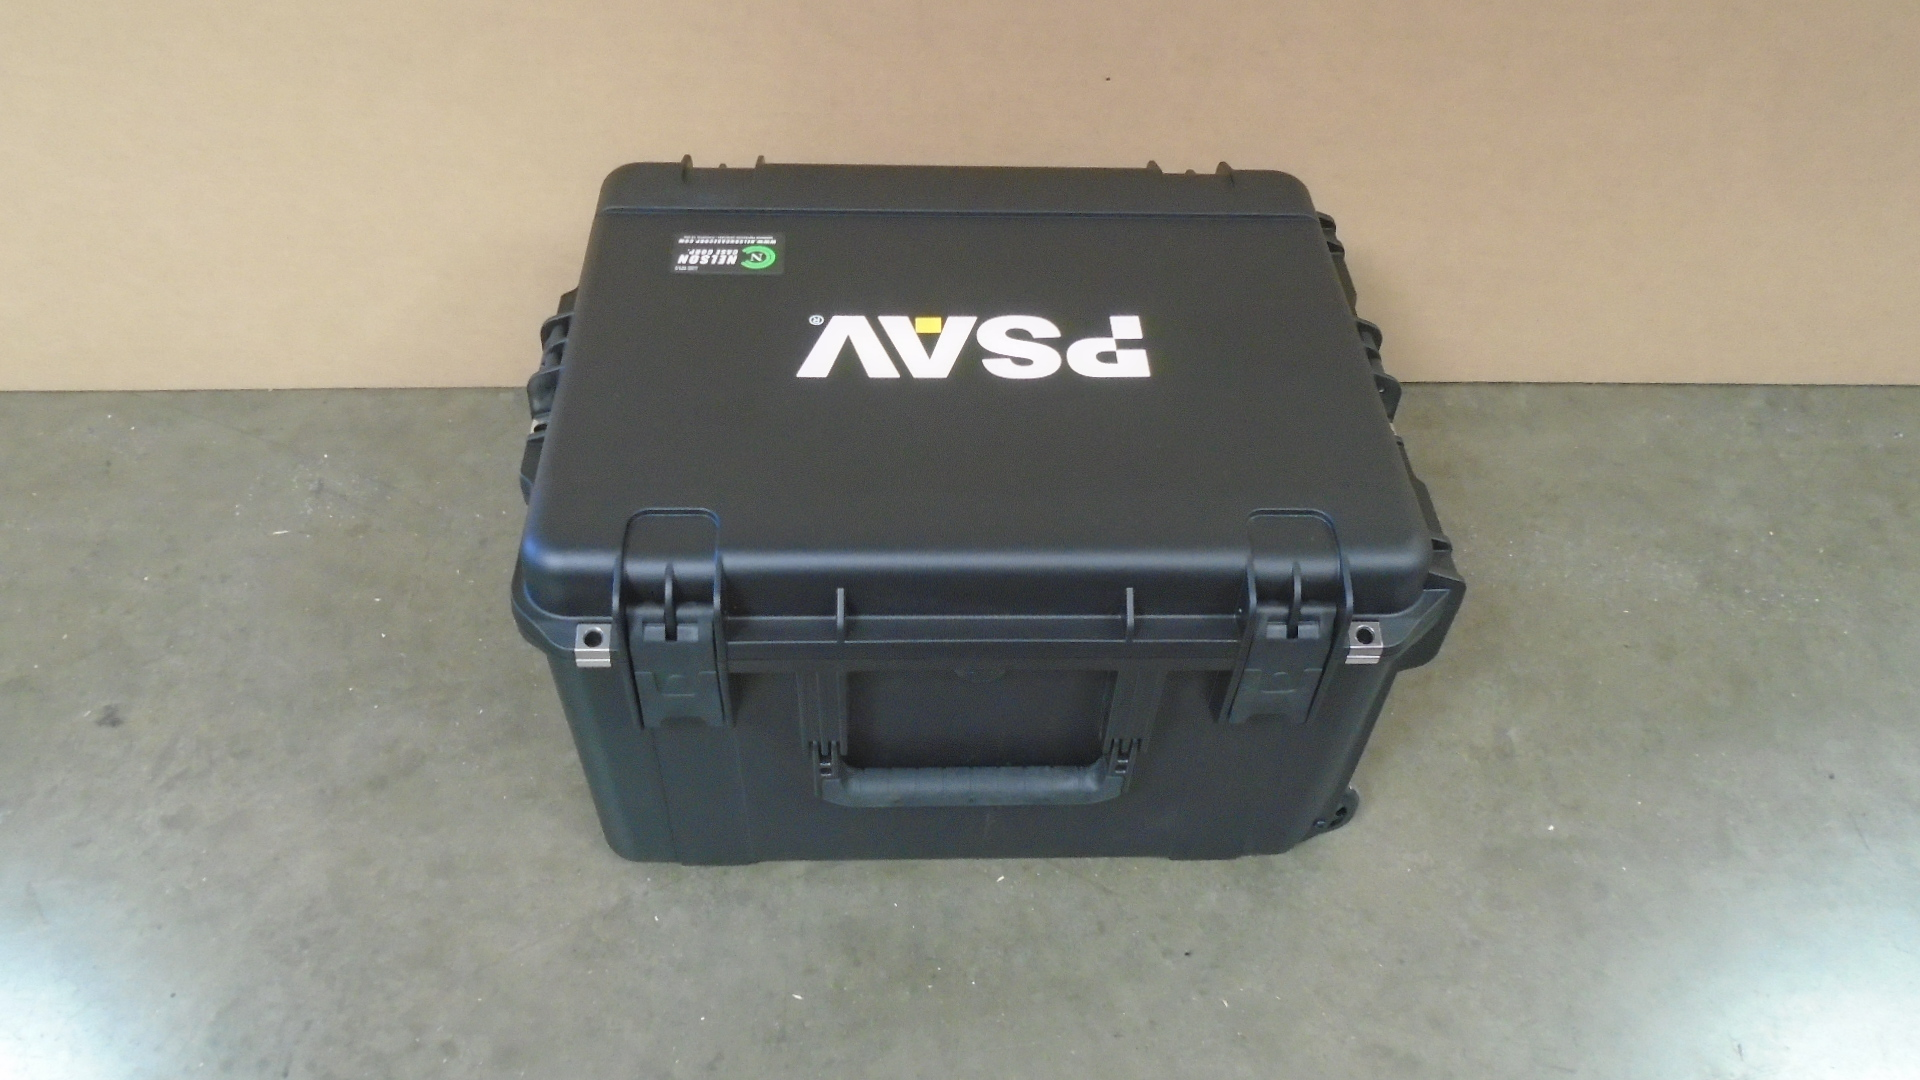 Print # 7613 - SKB 3i-2217-12 Retrofitted for SDI Distribution Kit By Nelson Case Corp